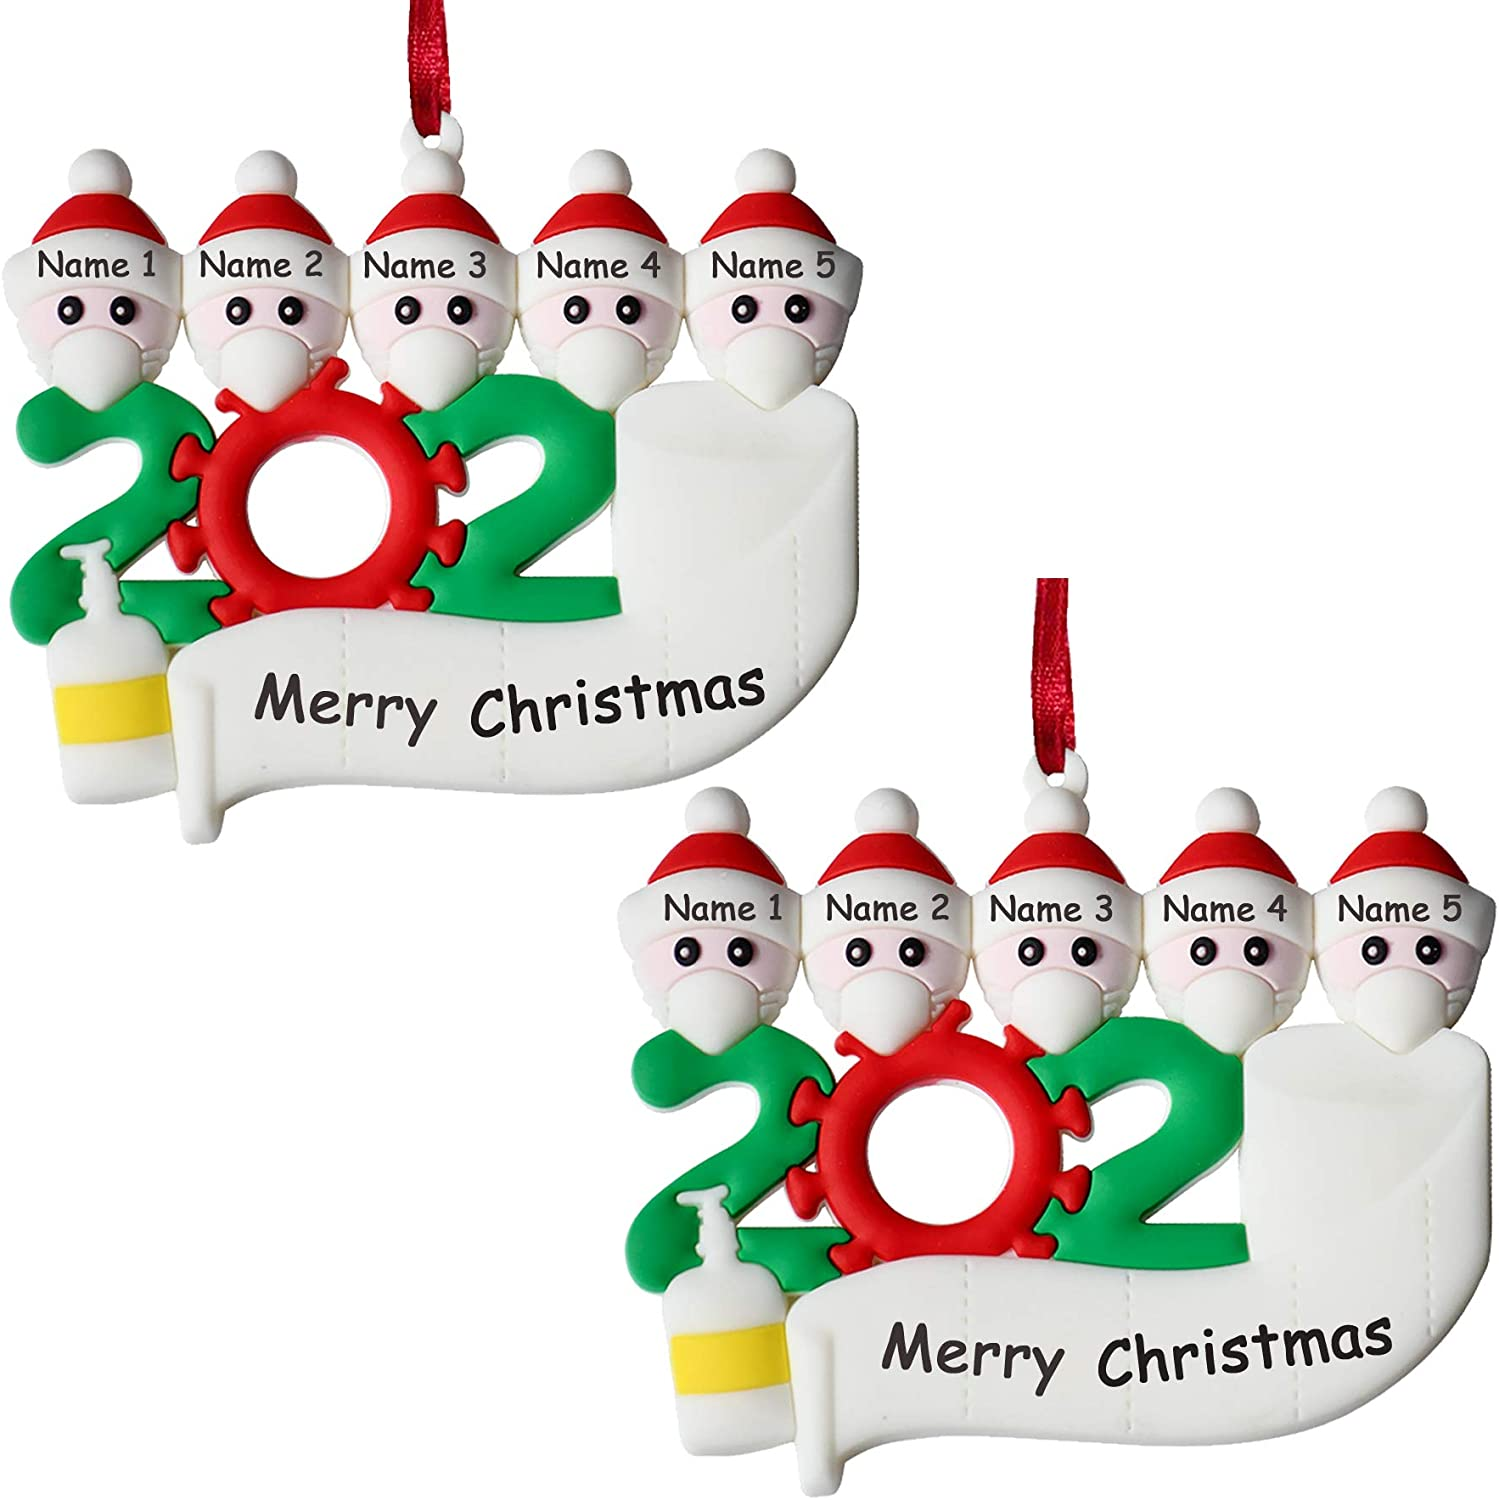 sunkoon 2020 Christmas Ornament 2PACK Personalized Decorative Hanging Ornaments Quarantine Survivor Family of 5 Customized Decorating Gifts with Mask Creative Name Blessing DIY Non-breakable